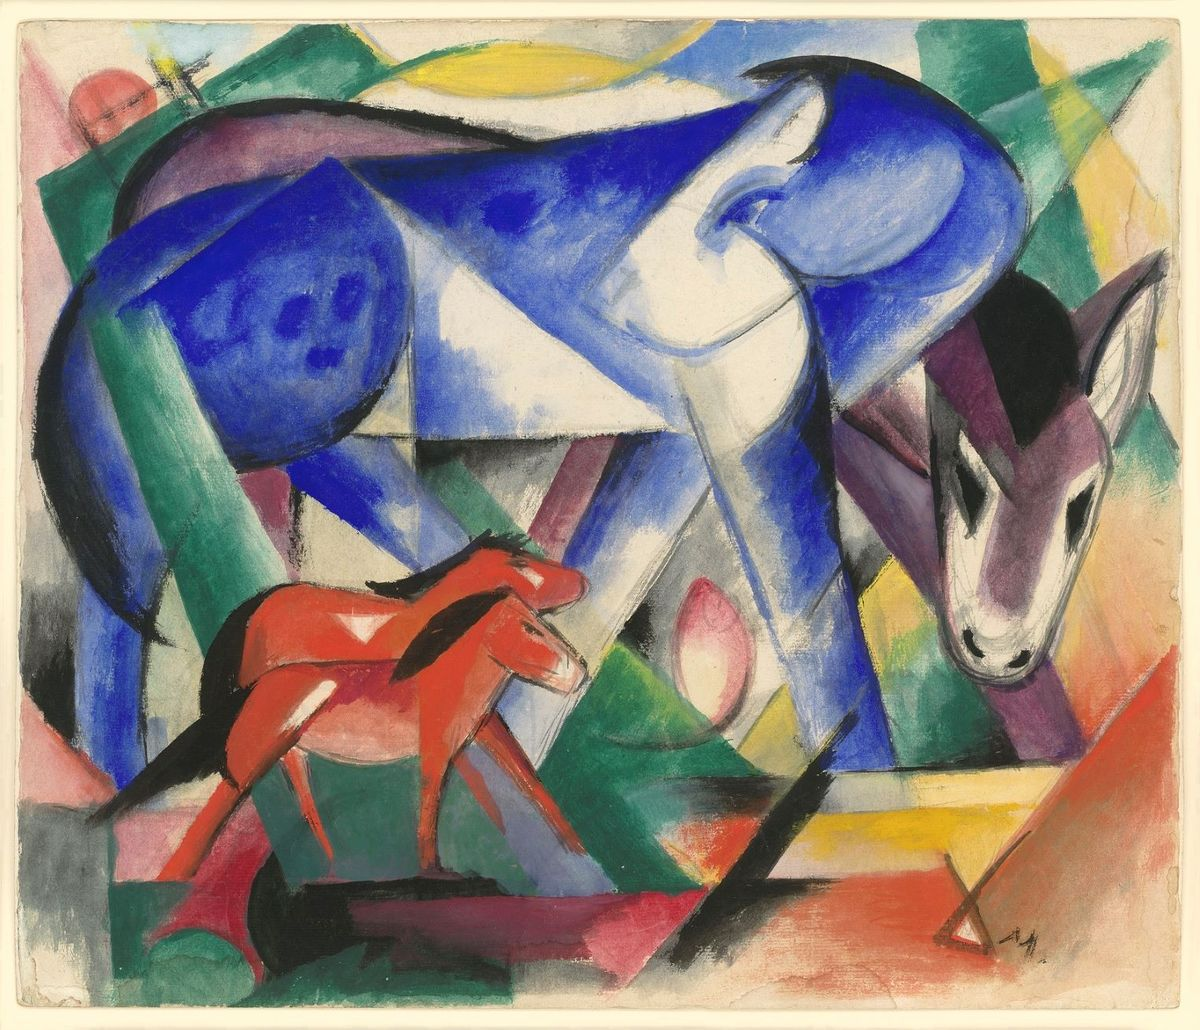 Franz Marc, The First Animals, 1913 [Les premiers animaux]. Gouache and pencil on paper. Private Collection, courtesy Neue Galerie New York © Neue Galerie, New York